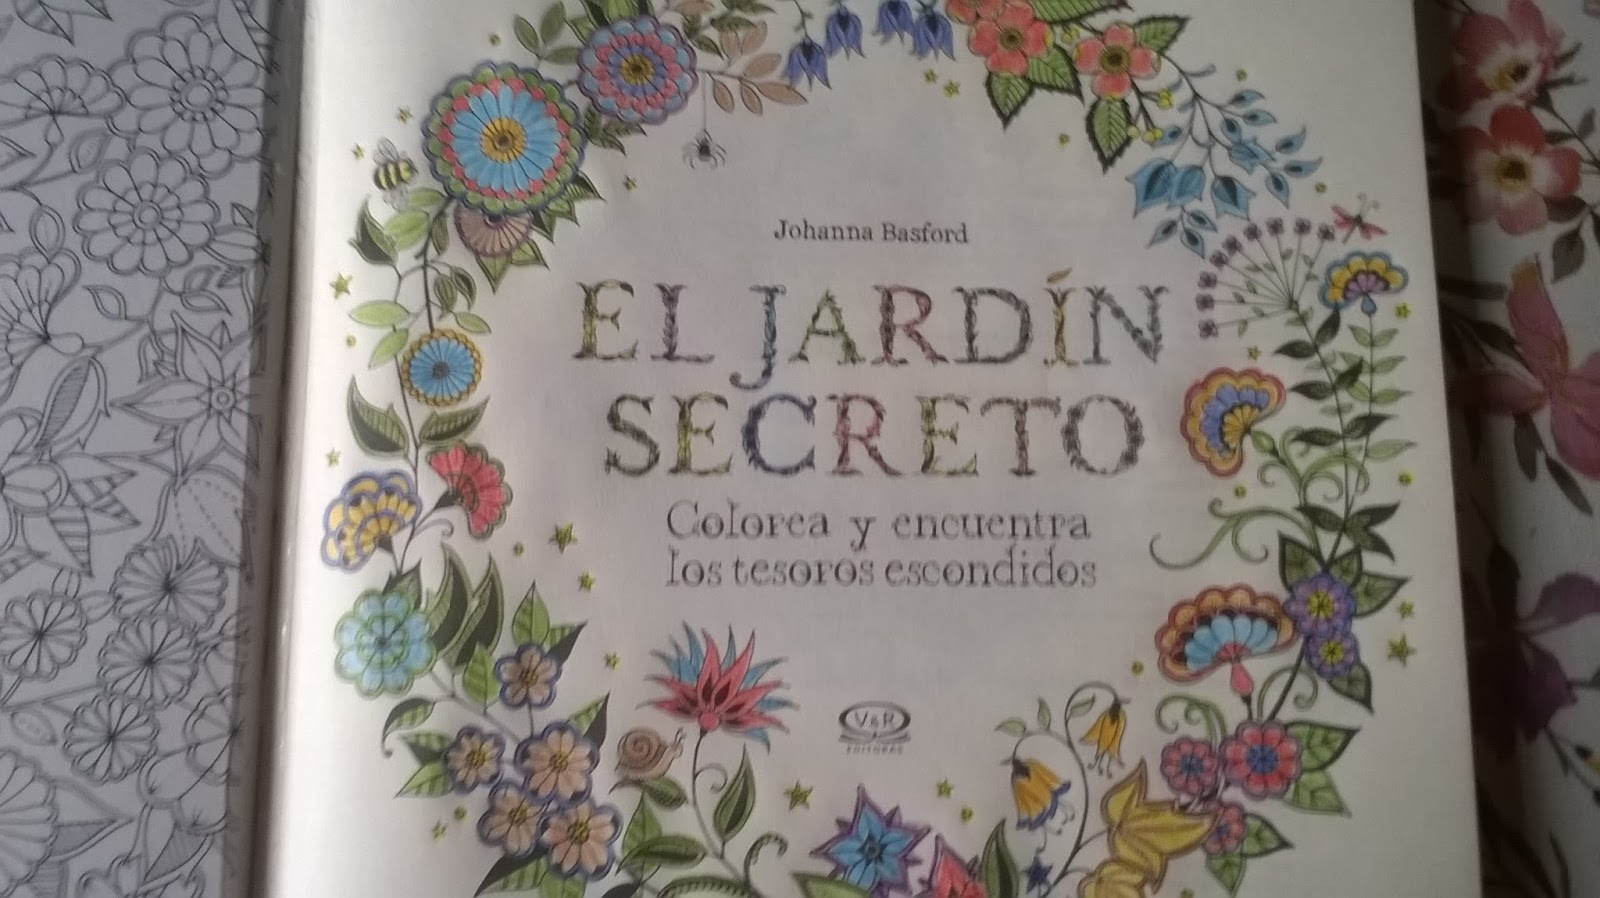 Sol de echesortu rese a el jard n secreto johanna basford for El jardin secreto torrent